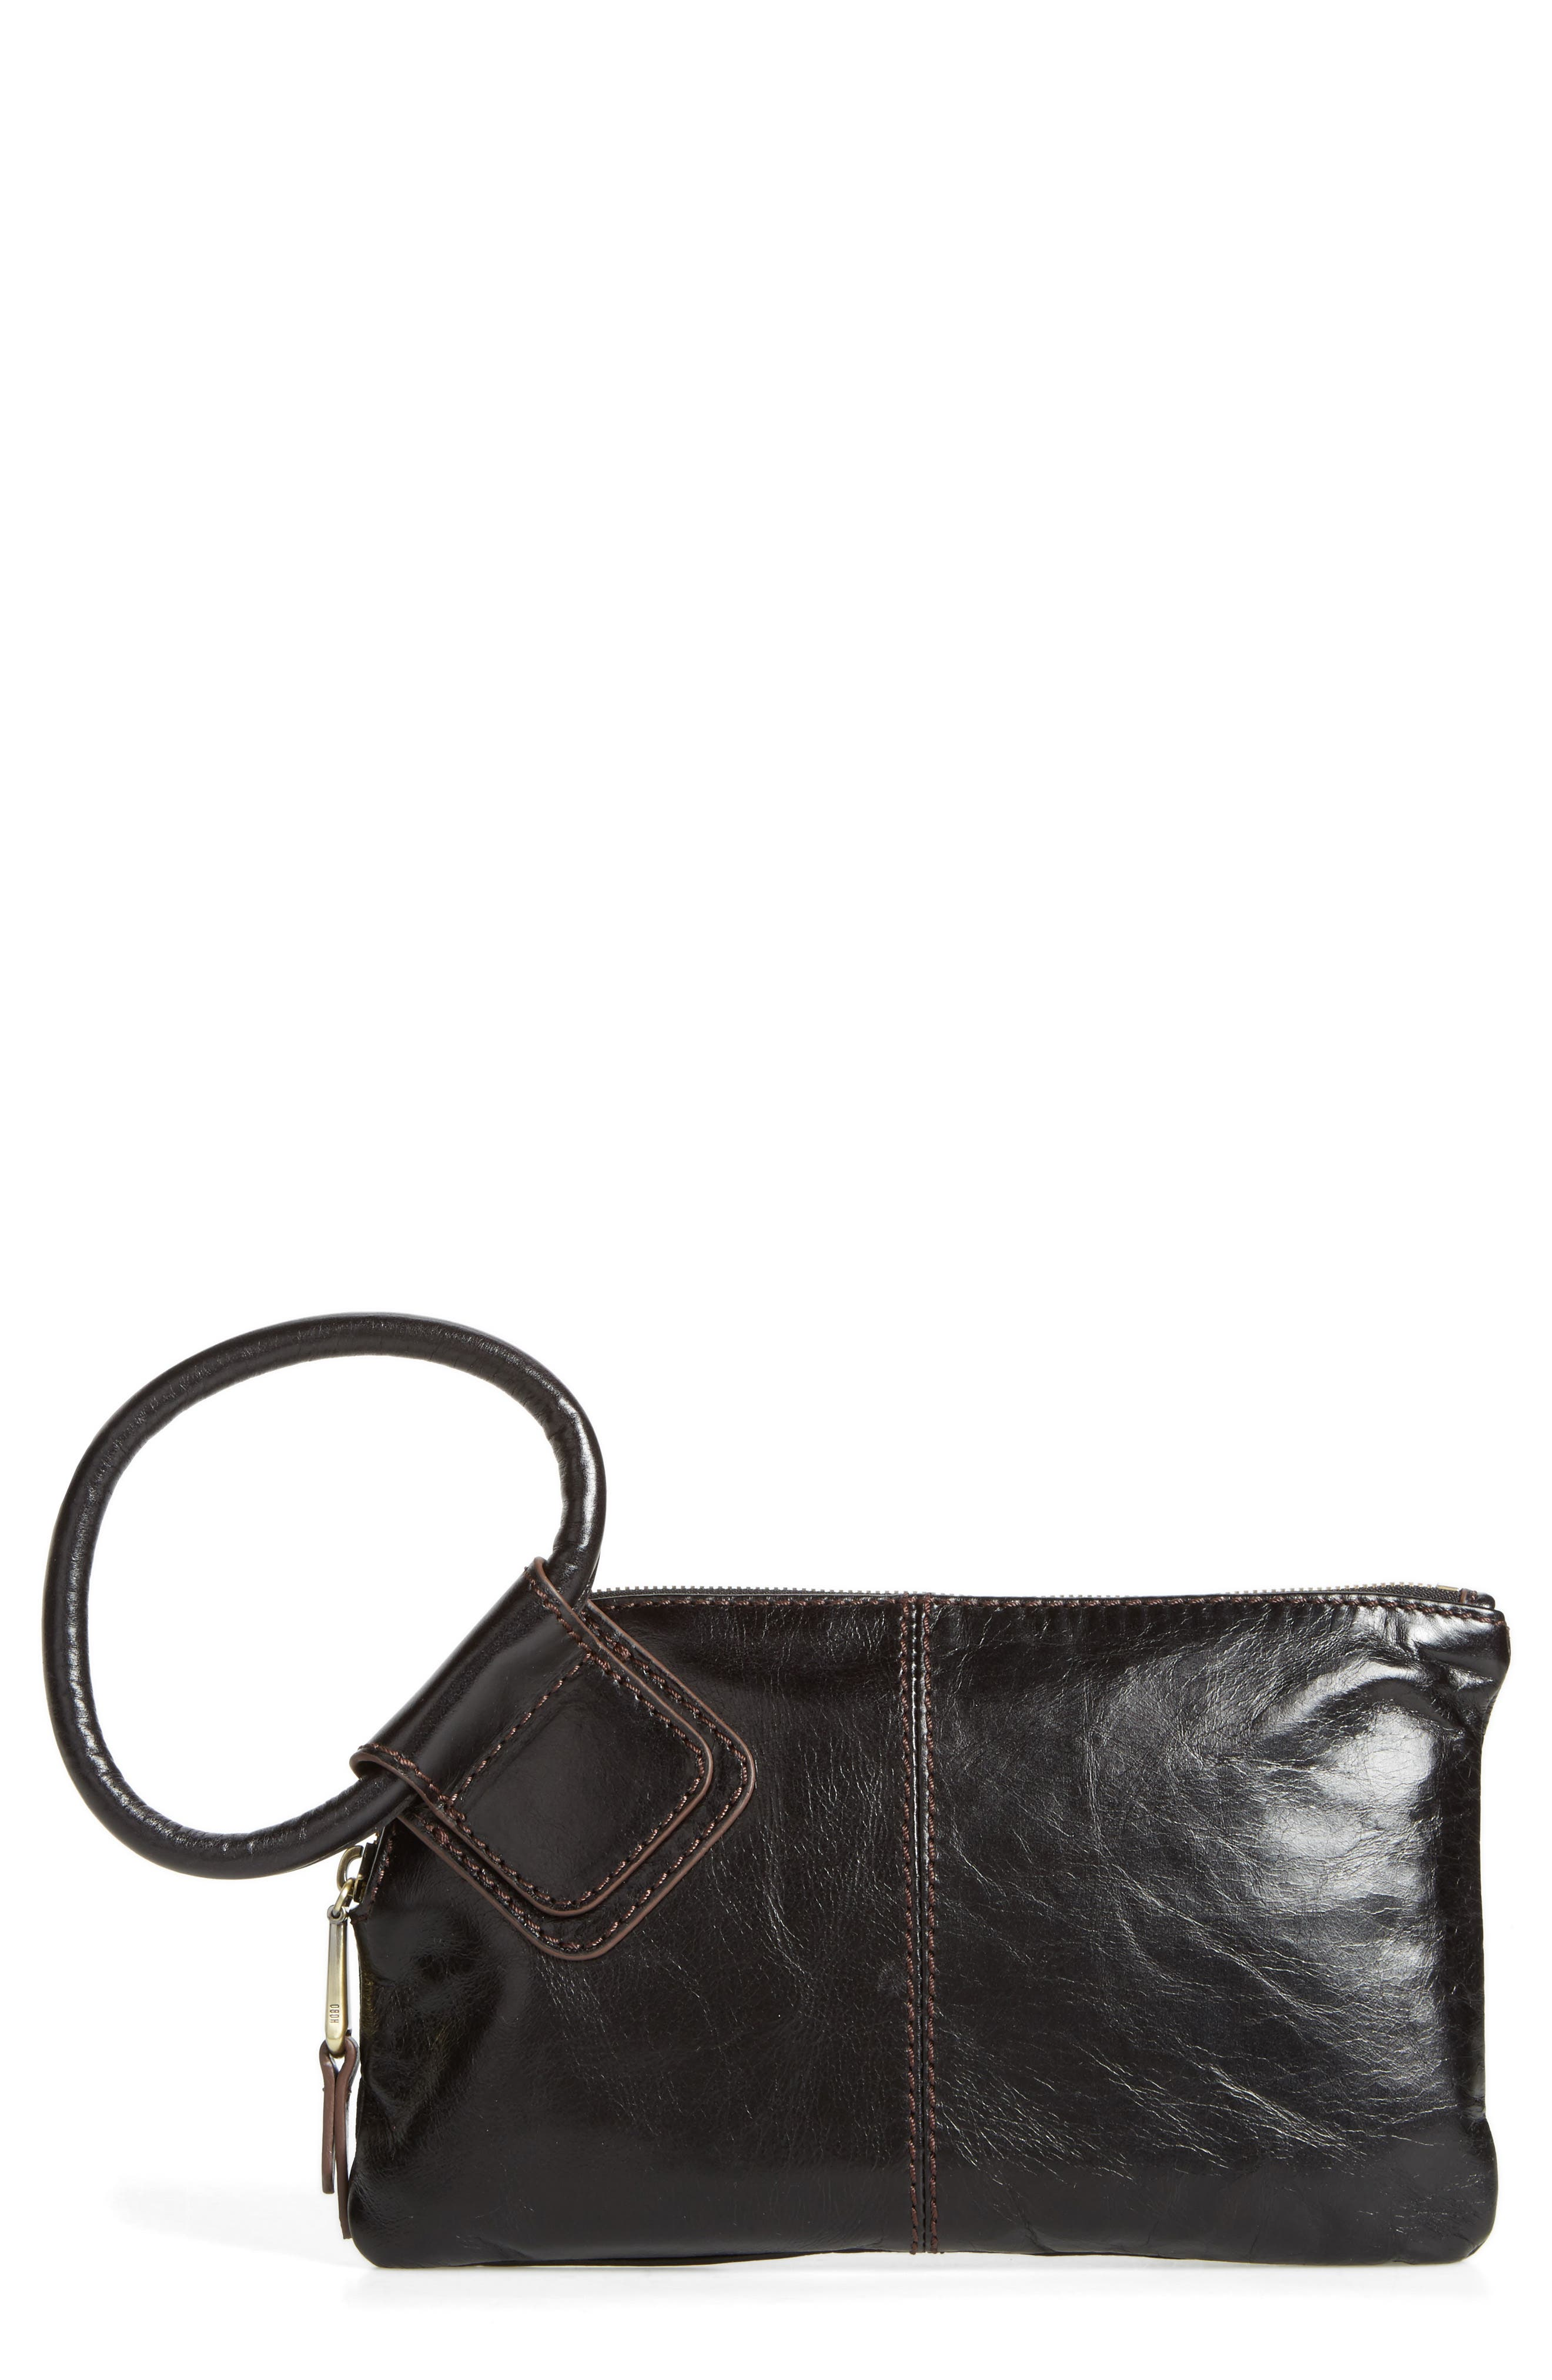 Alternate Image 1 Selected - Hobo Sable Calfskin Leather Clutch